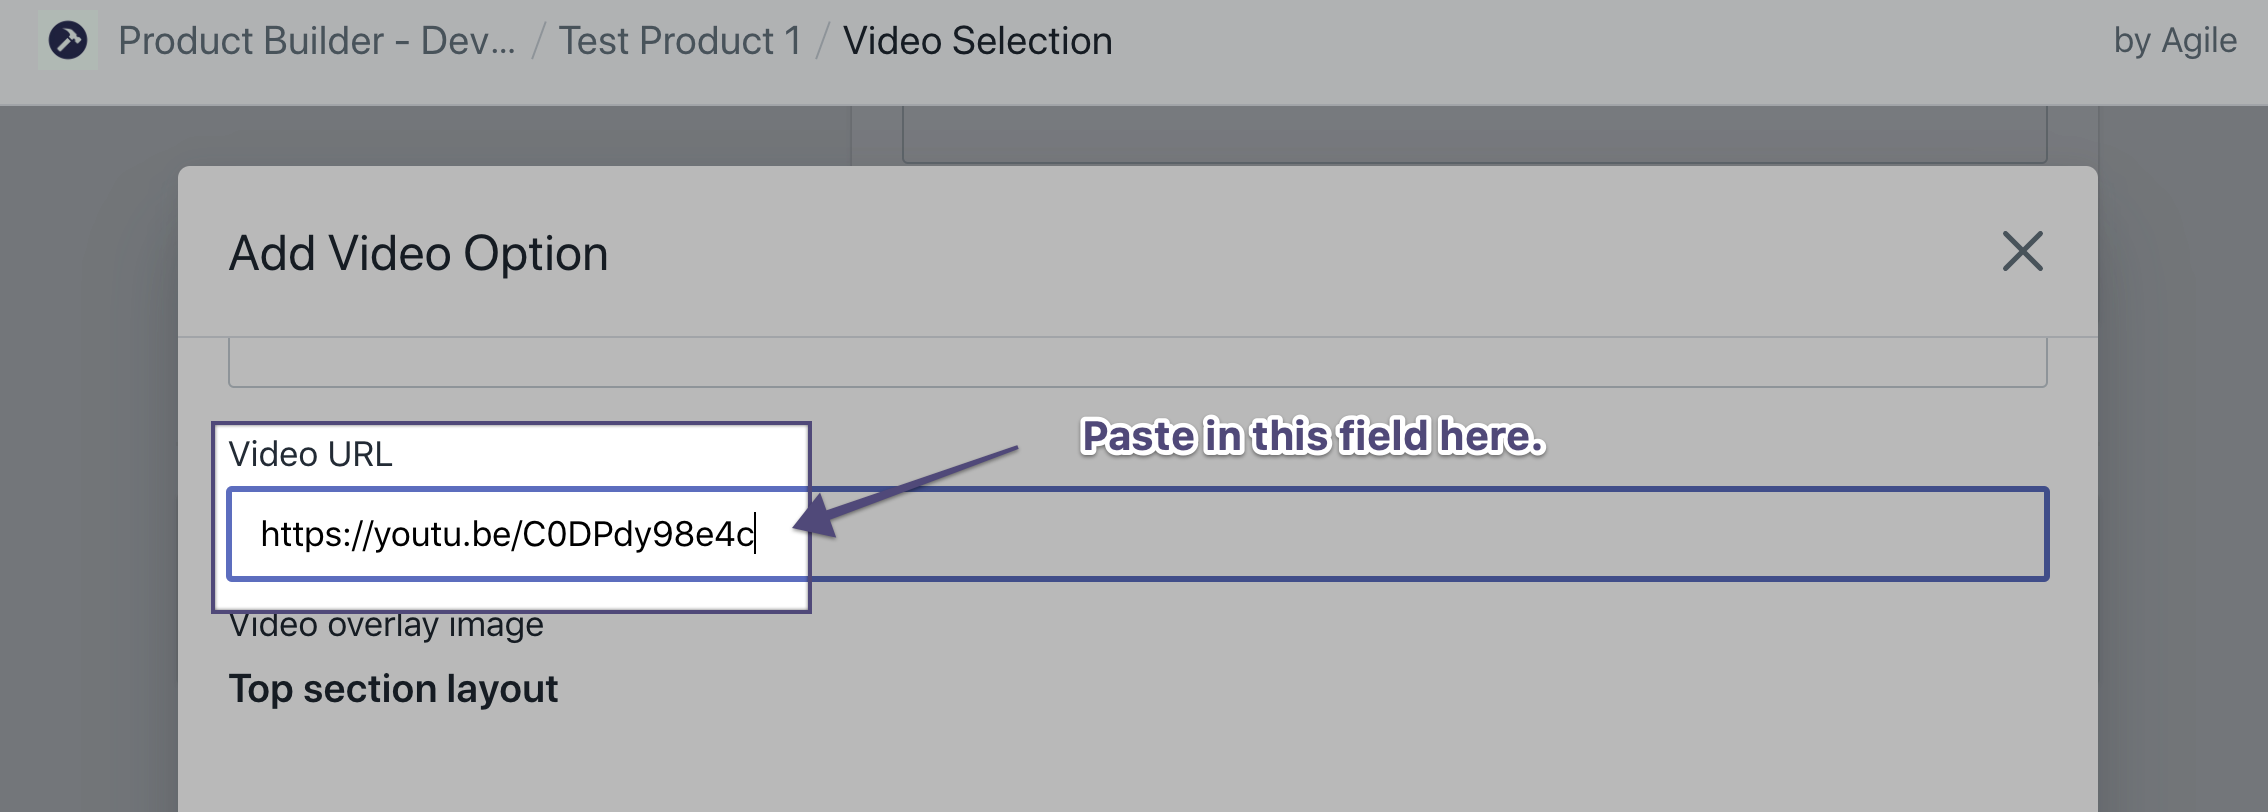 Product Builder - Adding the Video URL to the Video Selection.